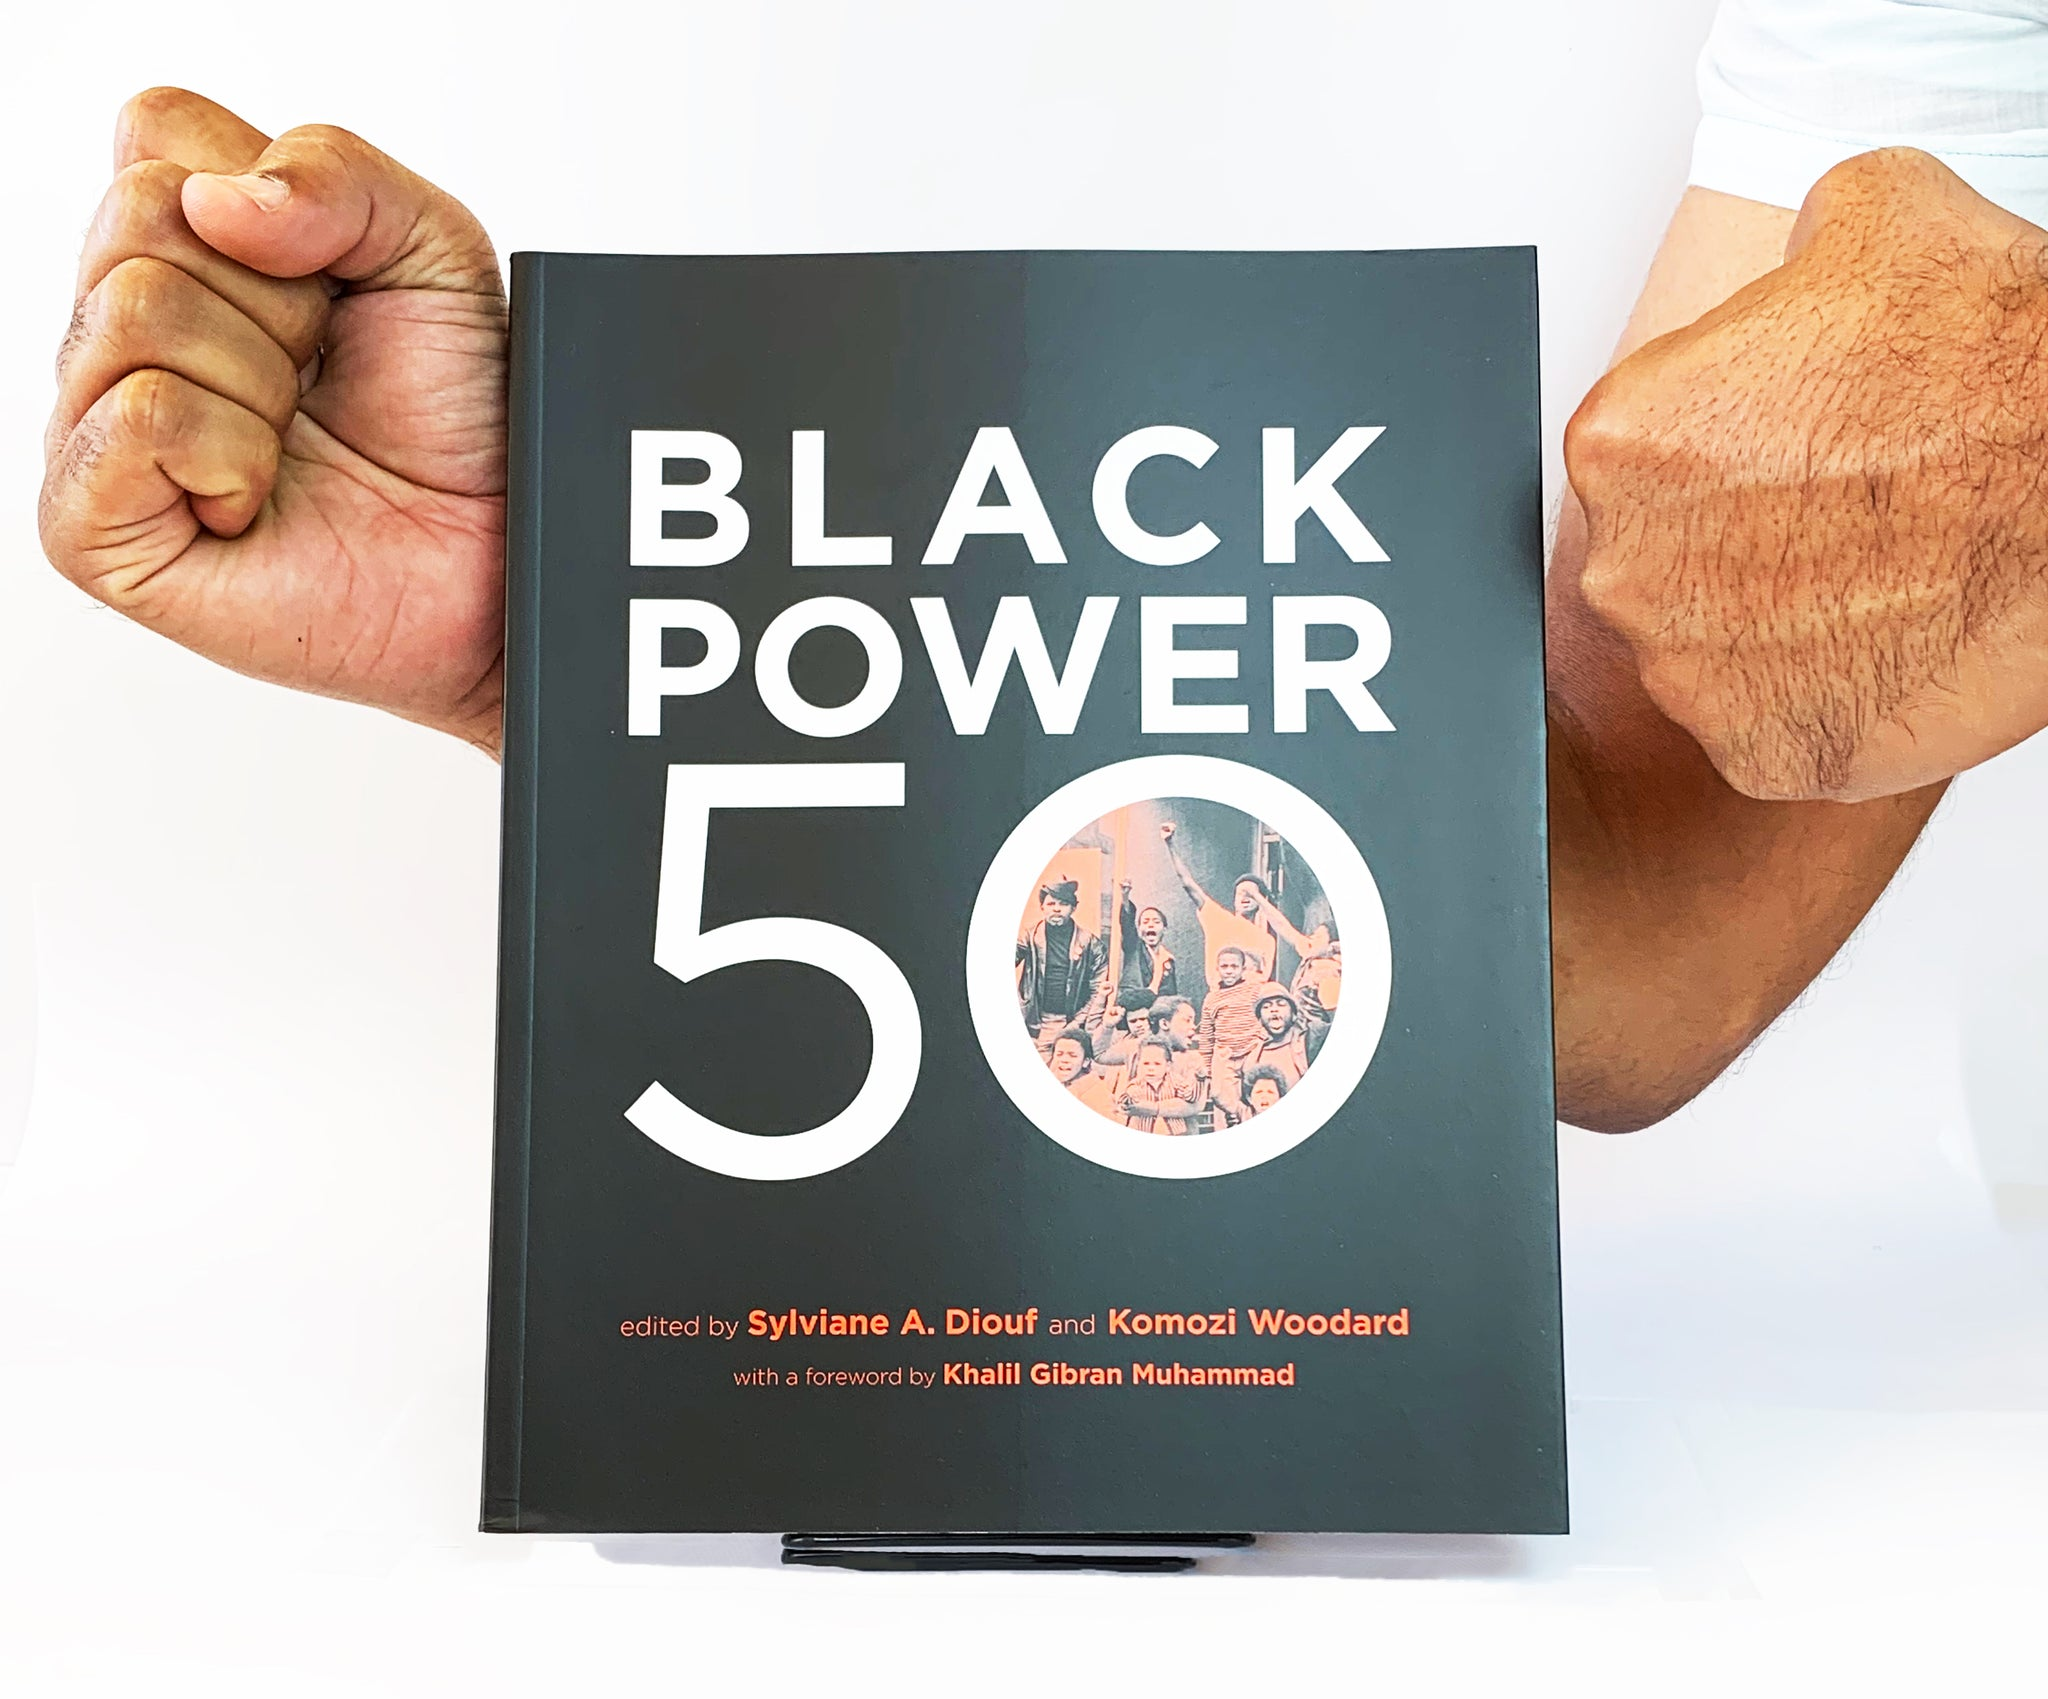 Black Power 50